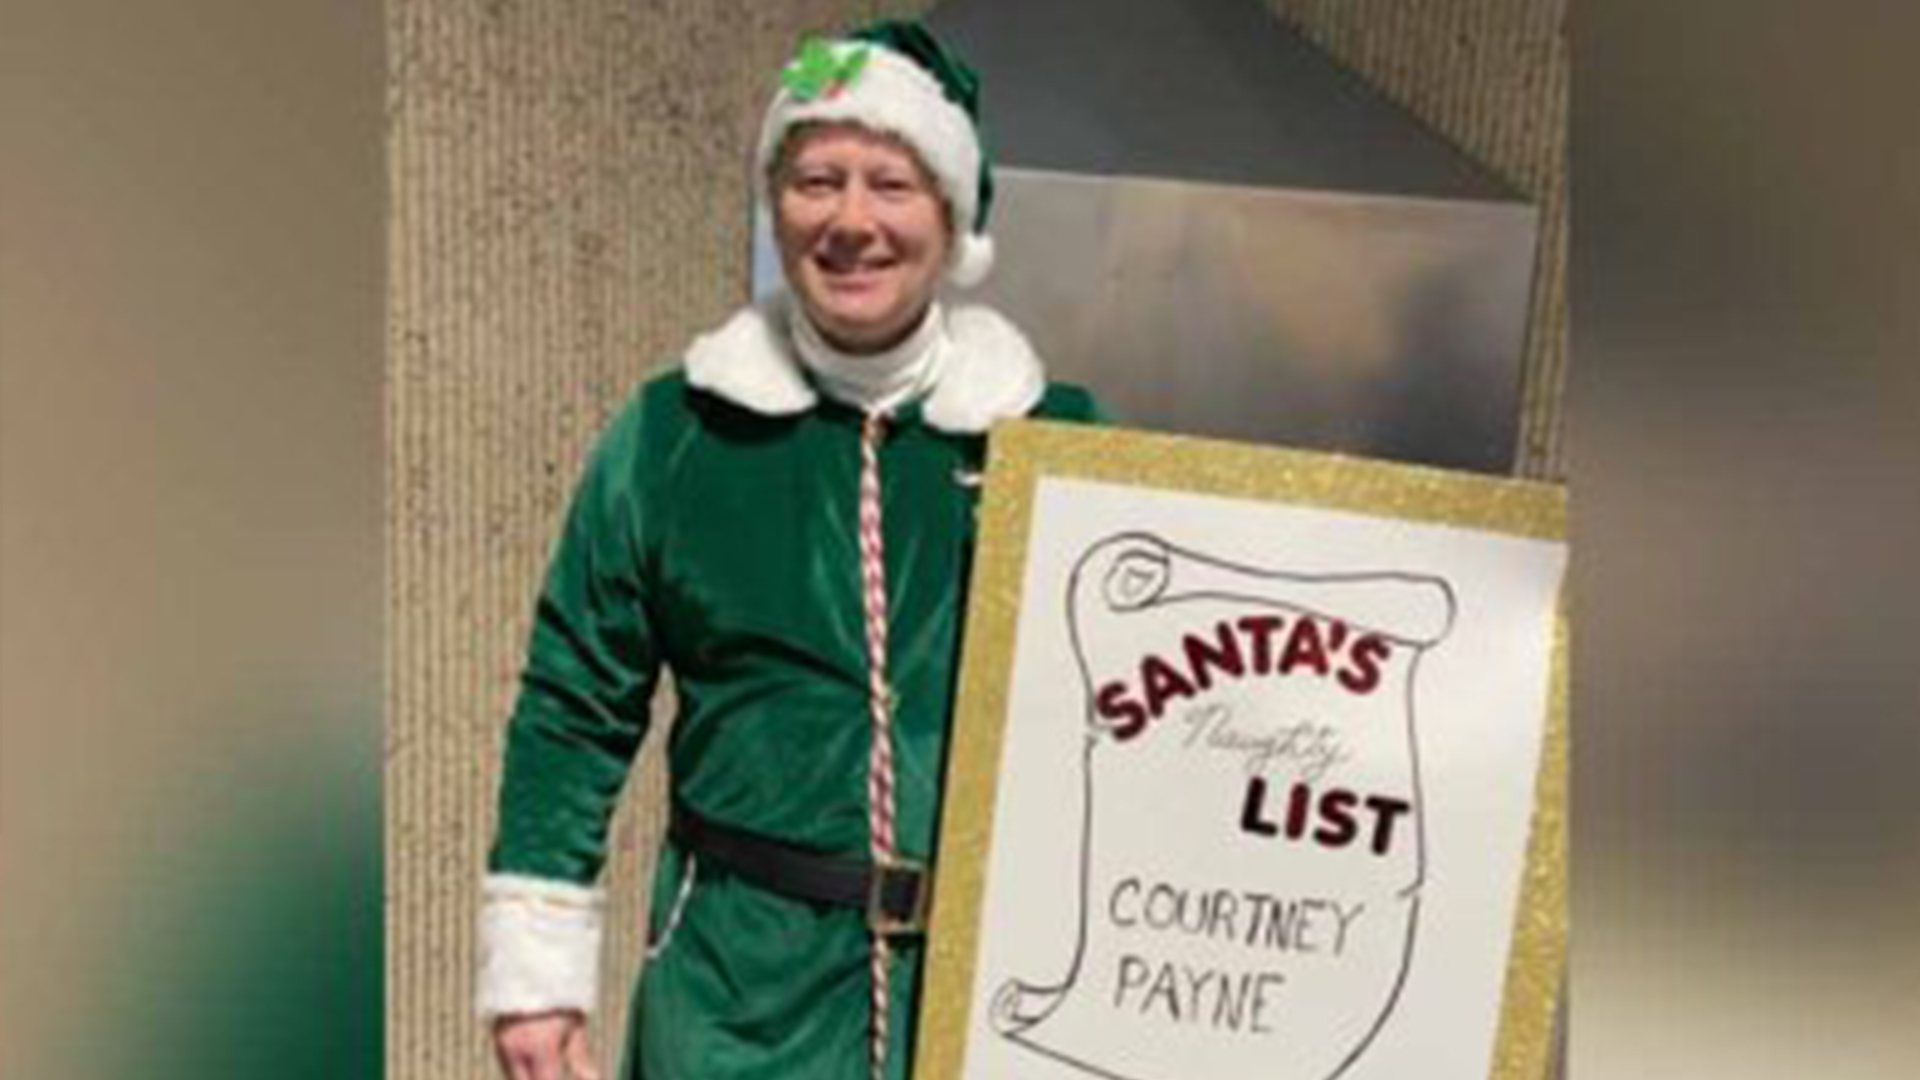 Dad Picks Up Daughter From Airport In Elf Costume And Goes